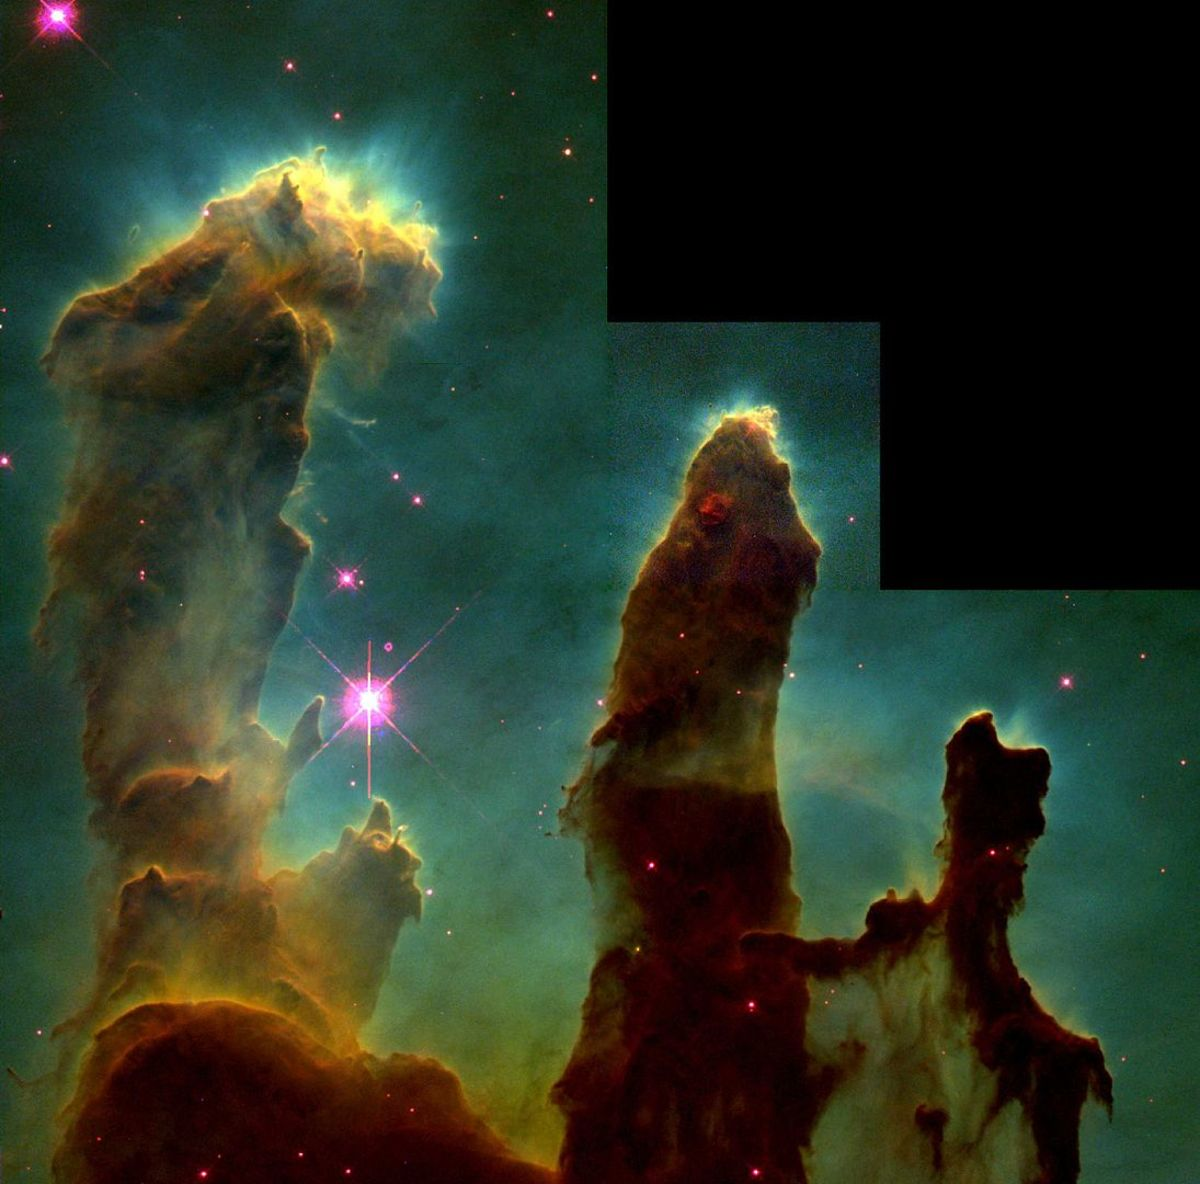 The Pillars of Creation, elephant-looking trunks of interstellar gas and dust, are part of the Eagle Nebula.